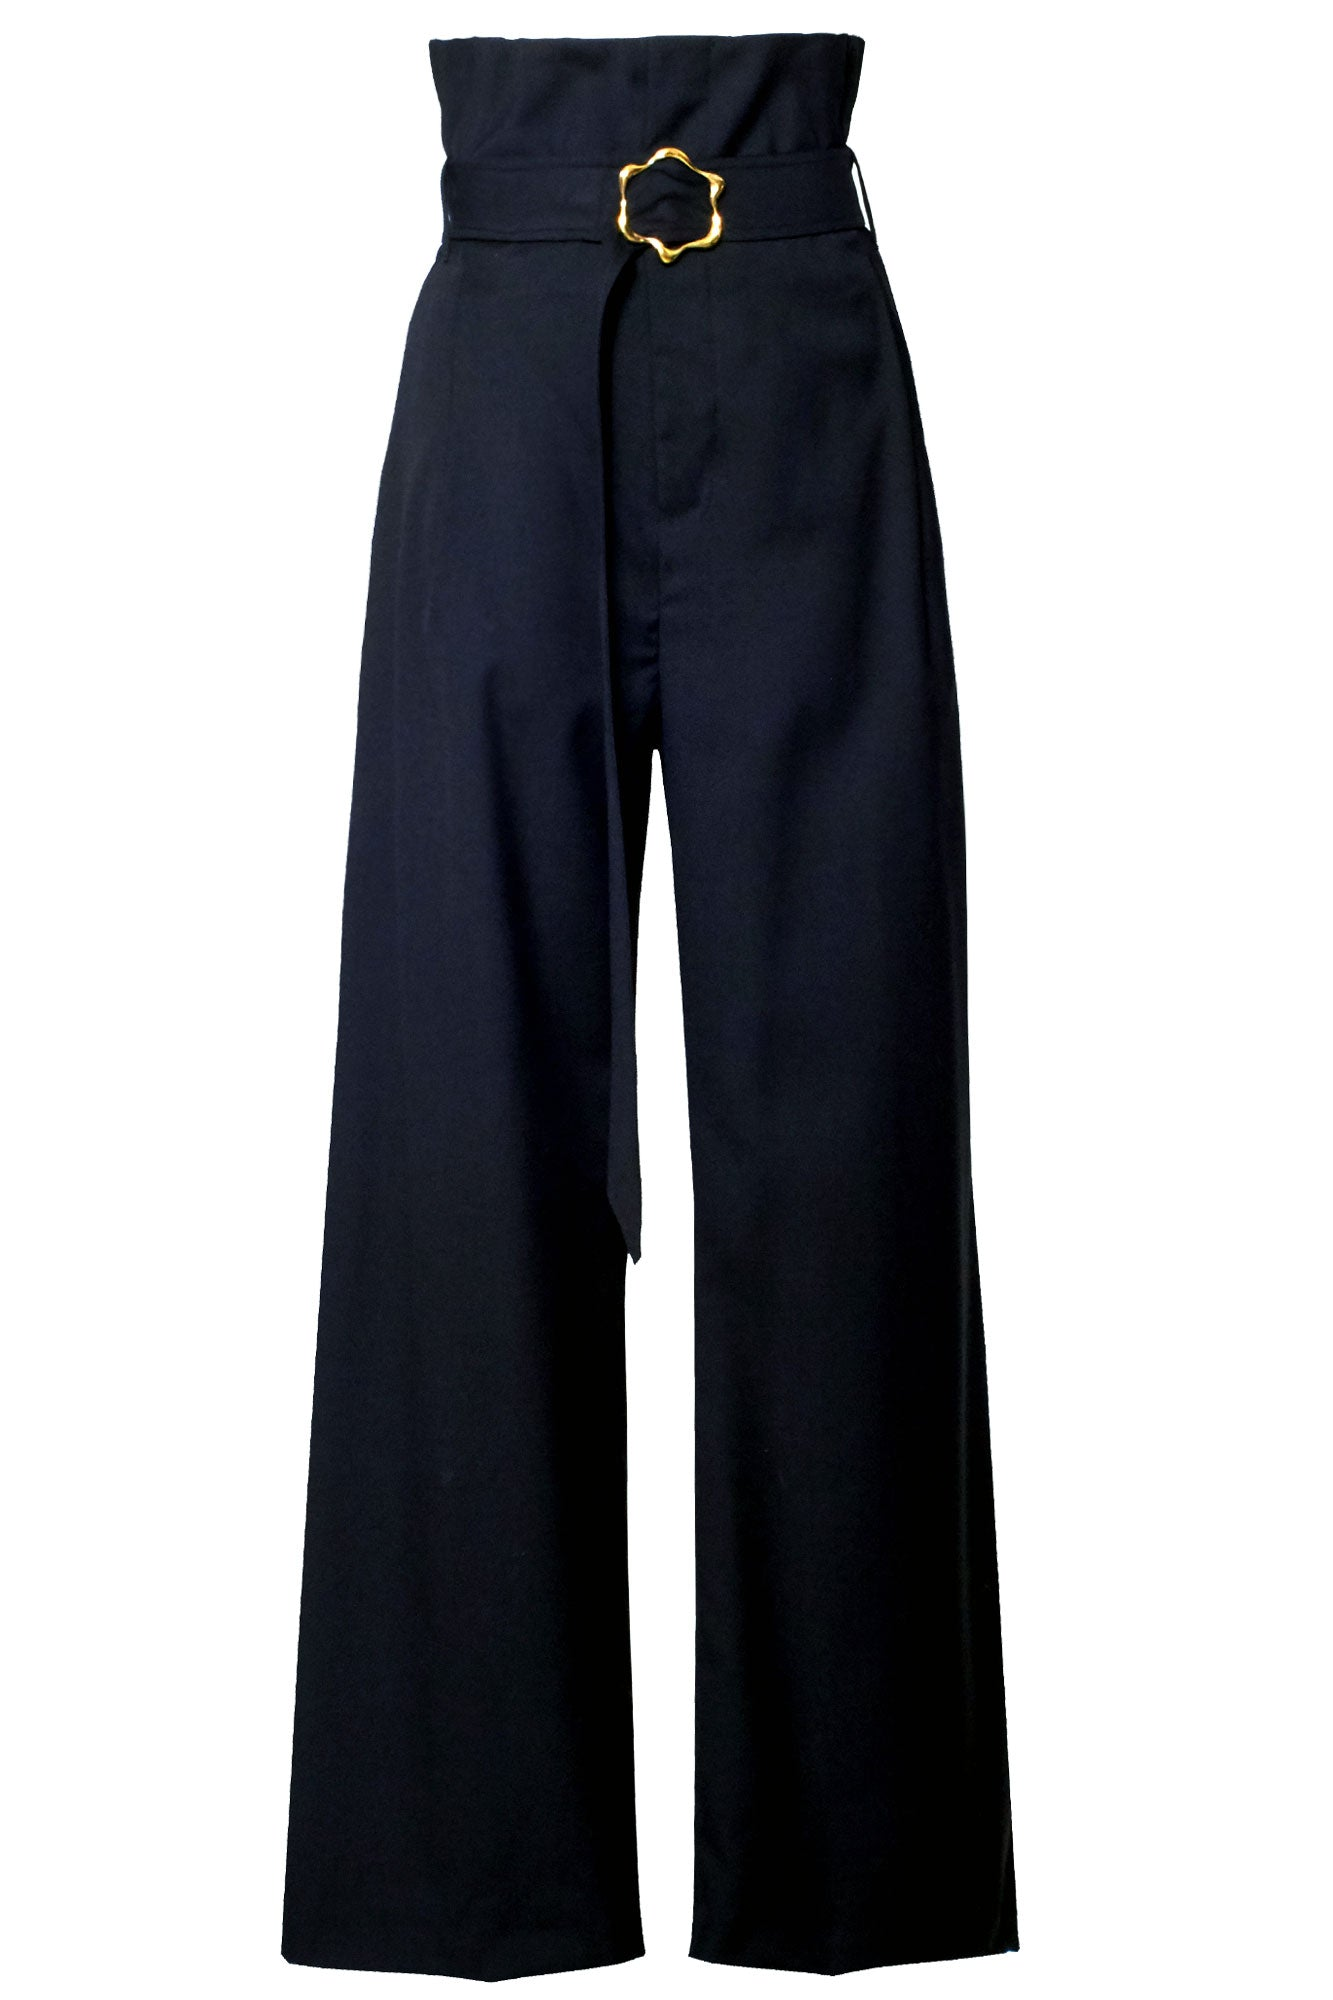 Beam Buckle Trouser - Black